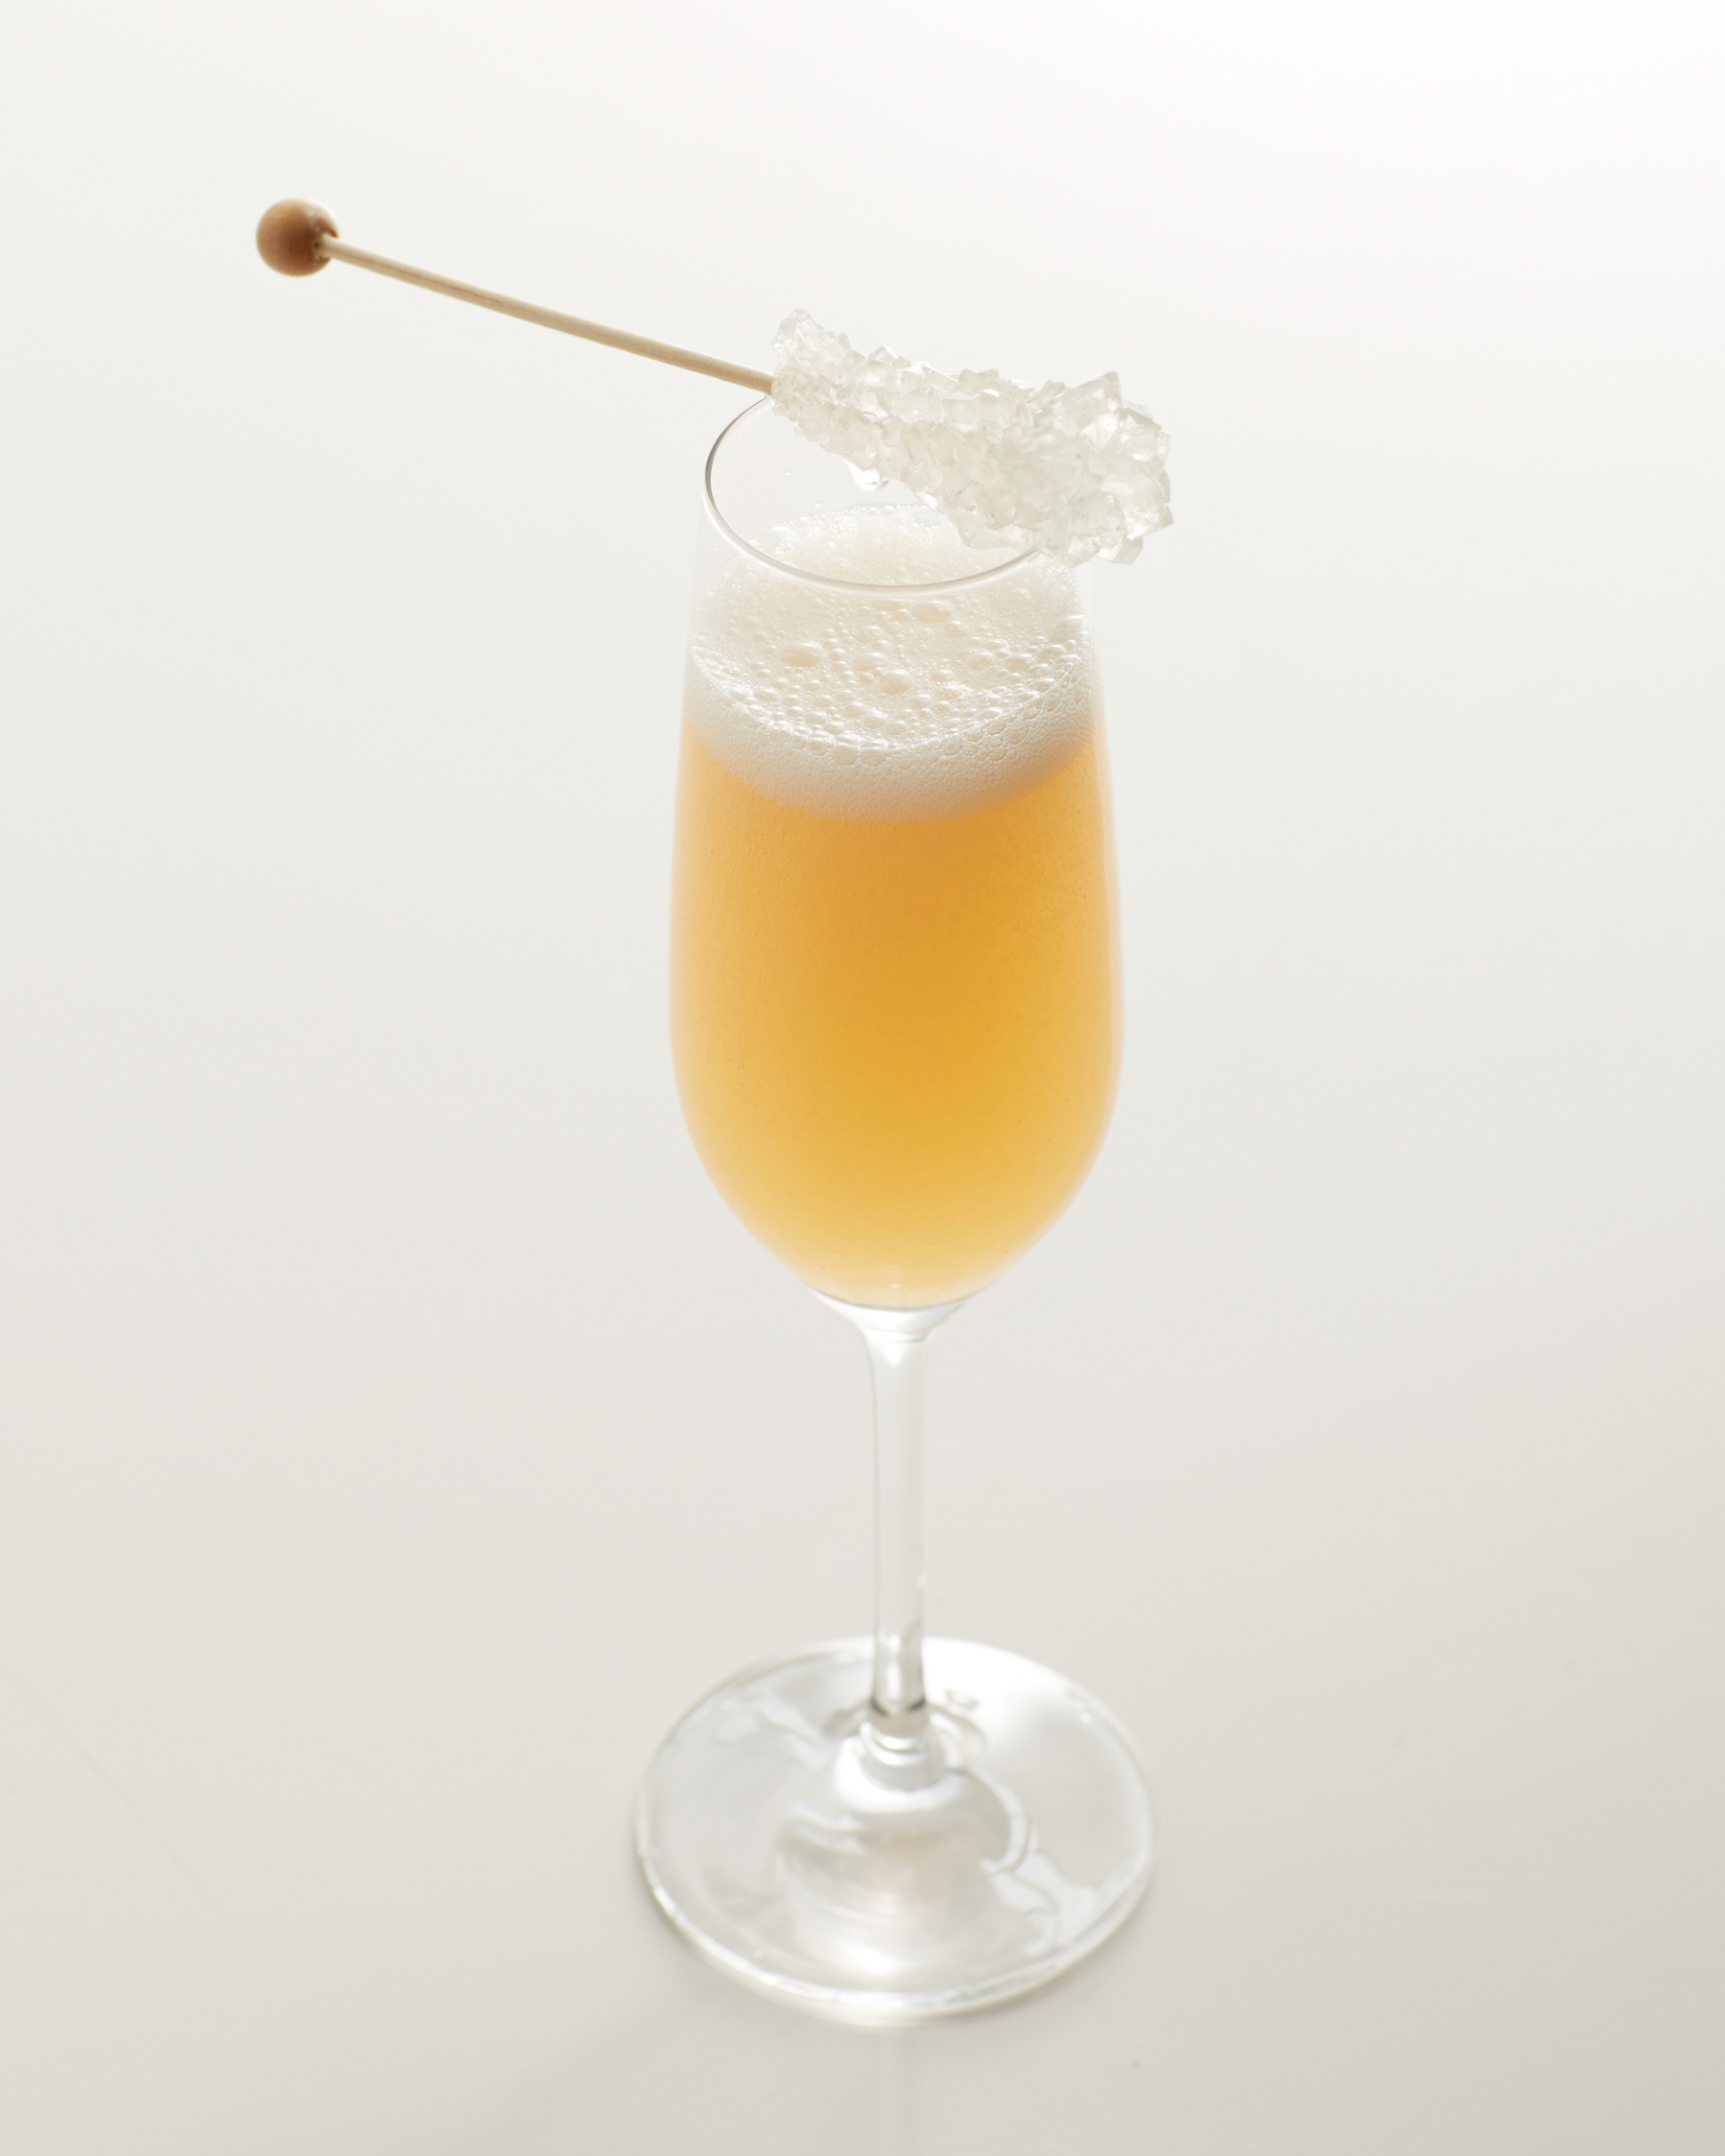 cocktails-guava-mimosa-138-d111018-0514.jpg